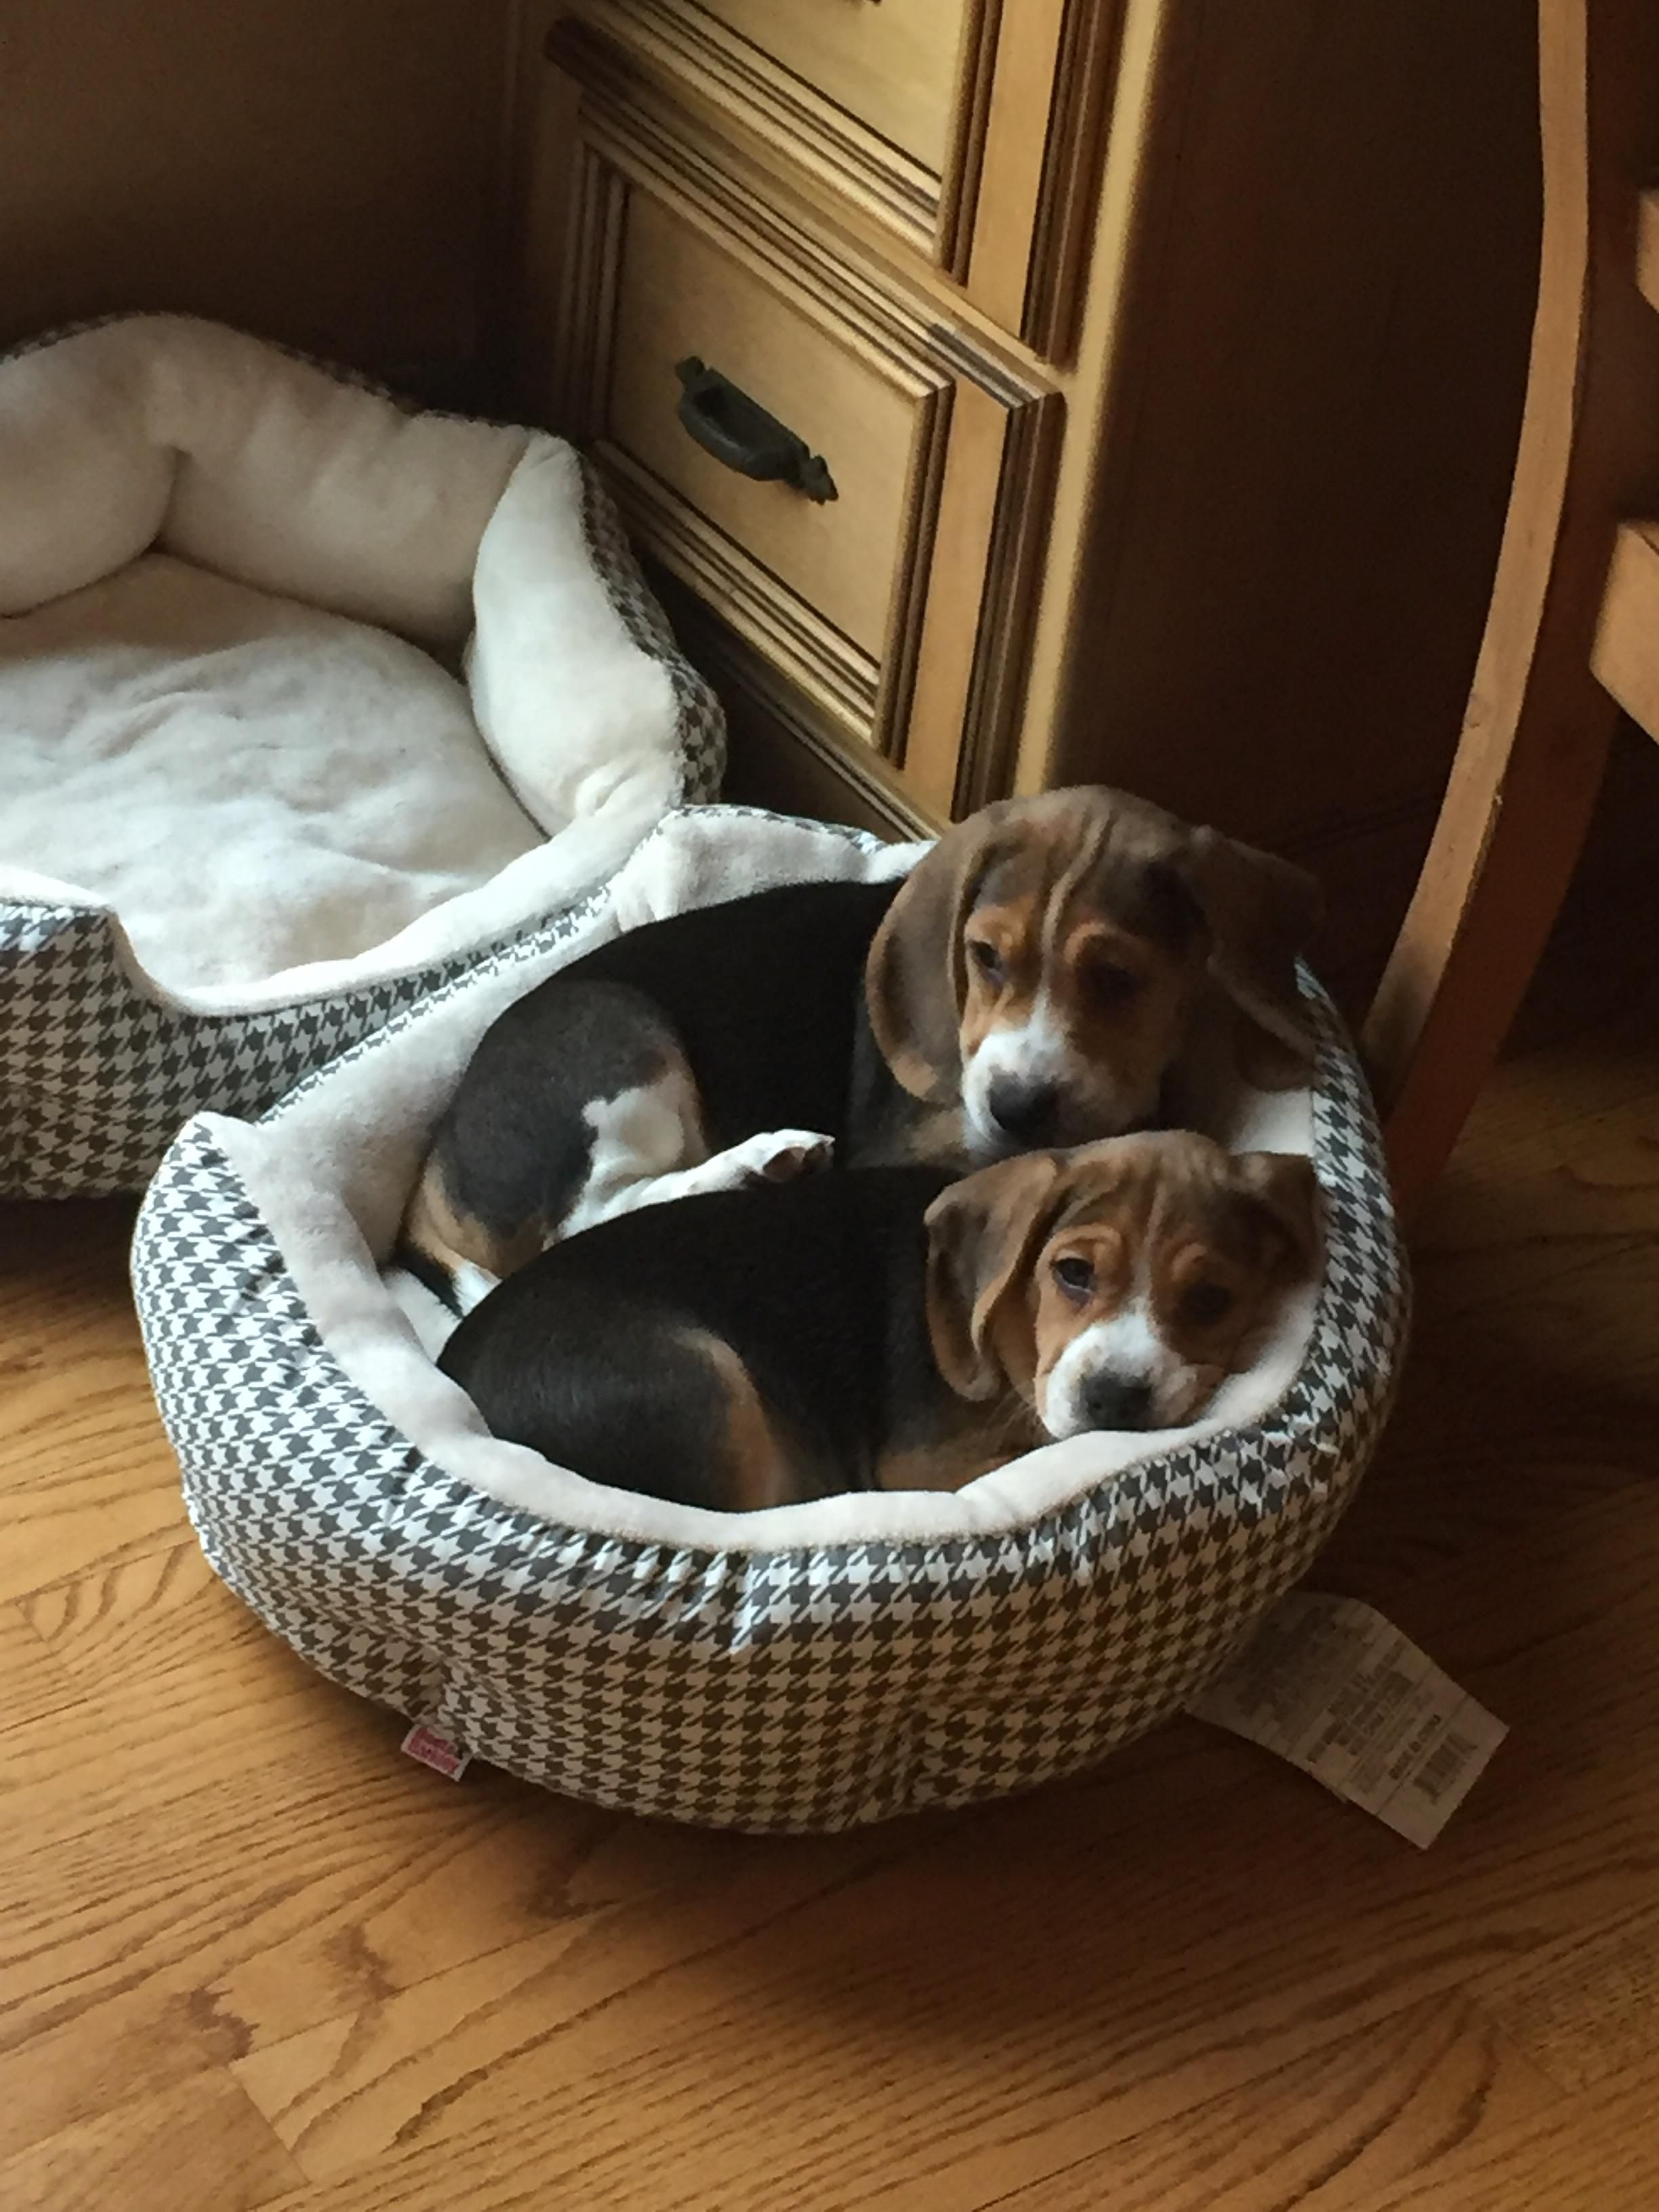 Reddit Say Hello To My New Beagle Puppies Victoria In The Front